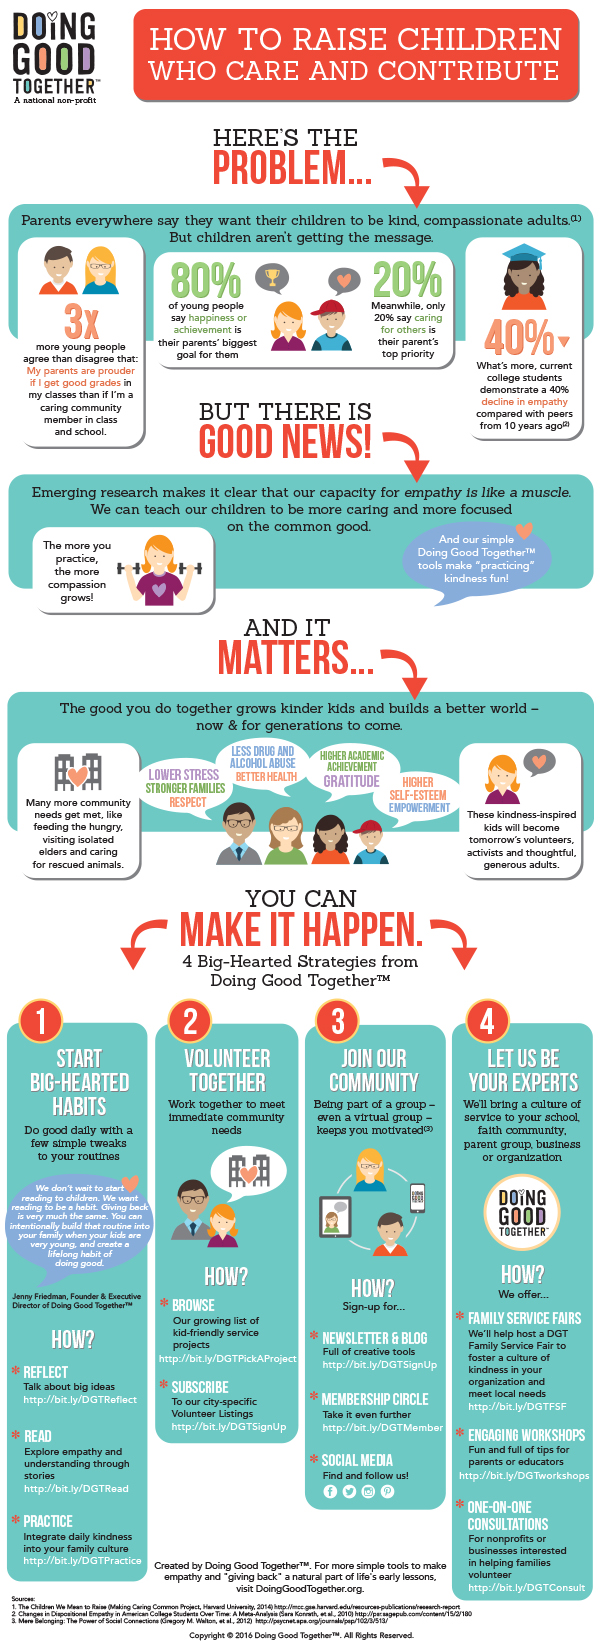 Print, share, or download this link-filled infographic with resources for adding kindness and caring to your kids' daily lives!